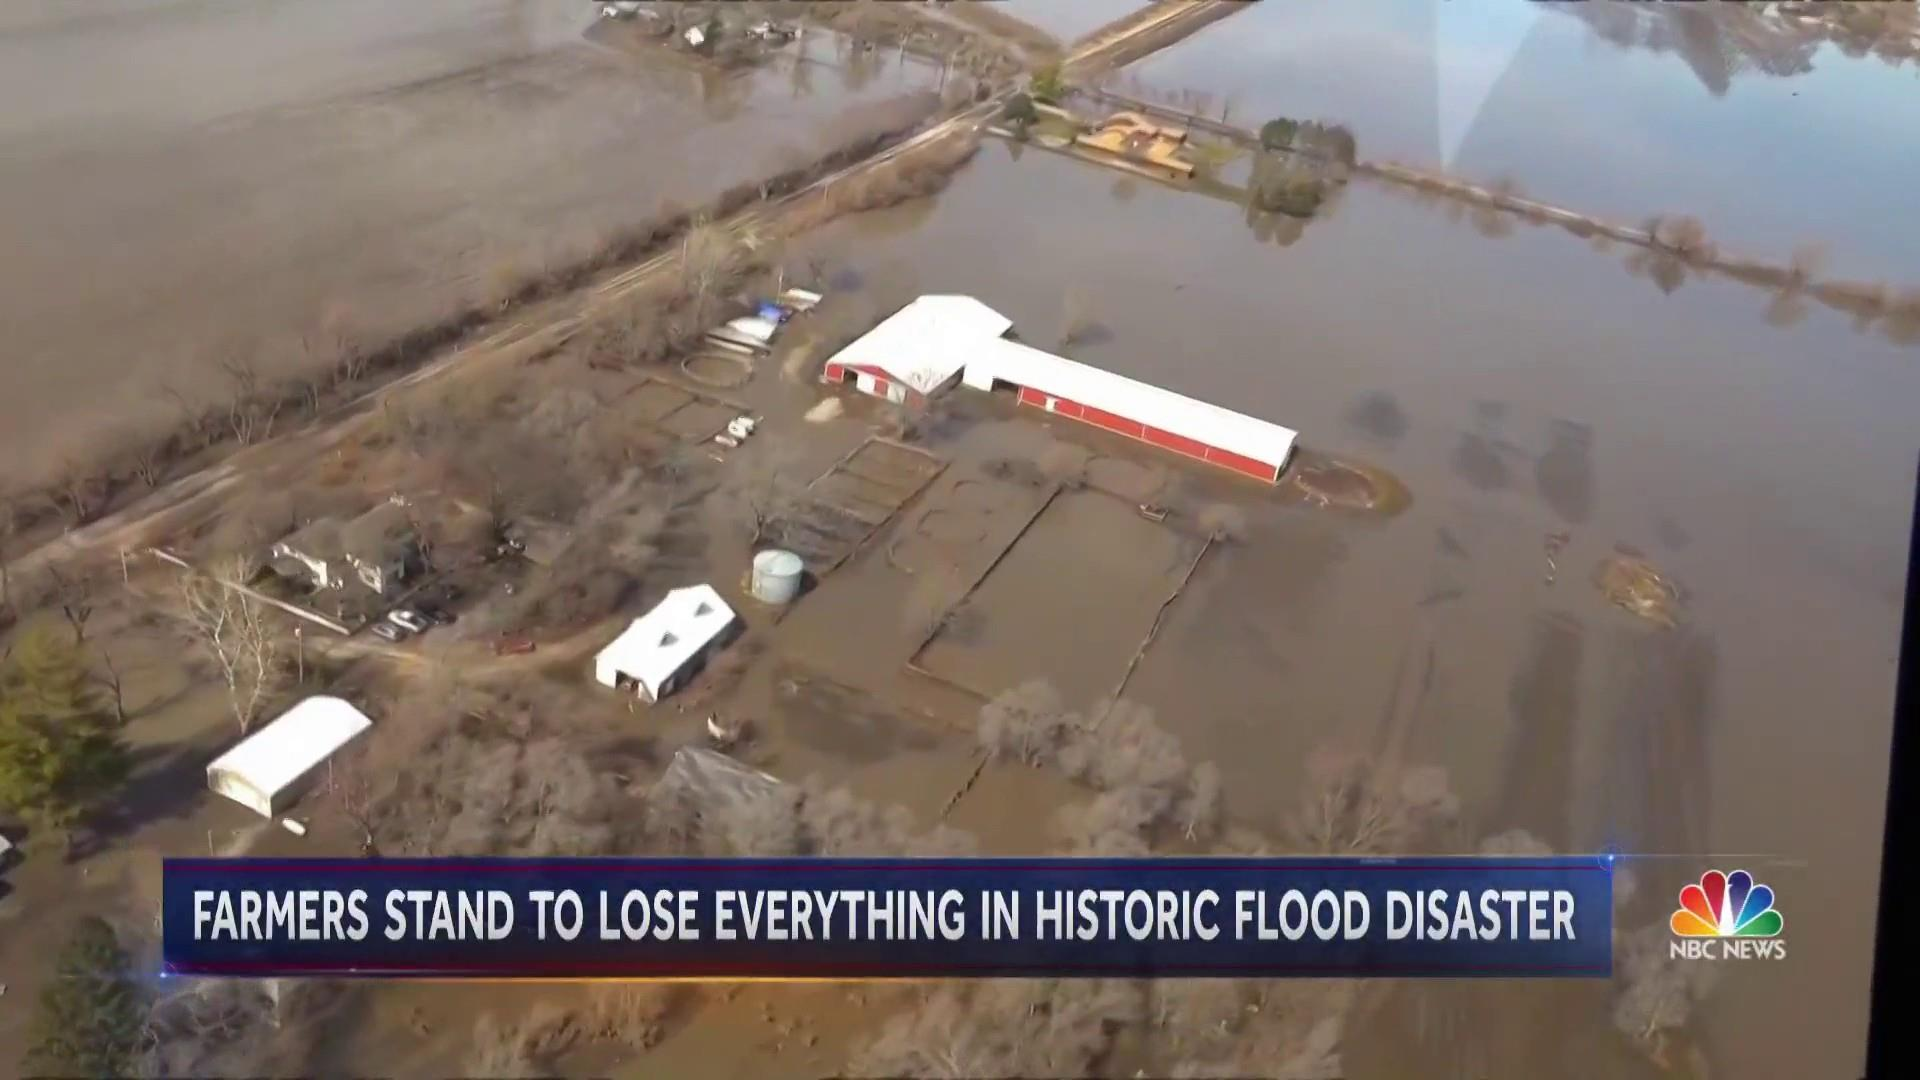 Midwest voters in Trump country face historic floods and call for climate action